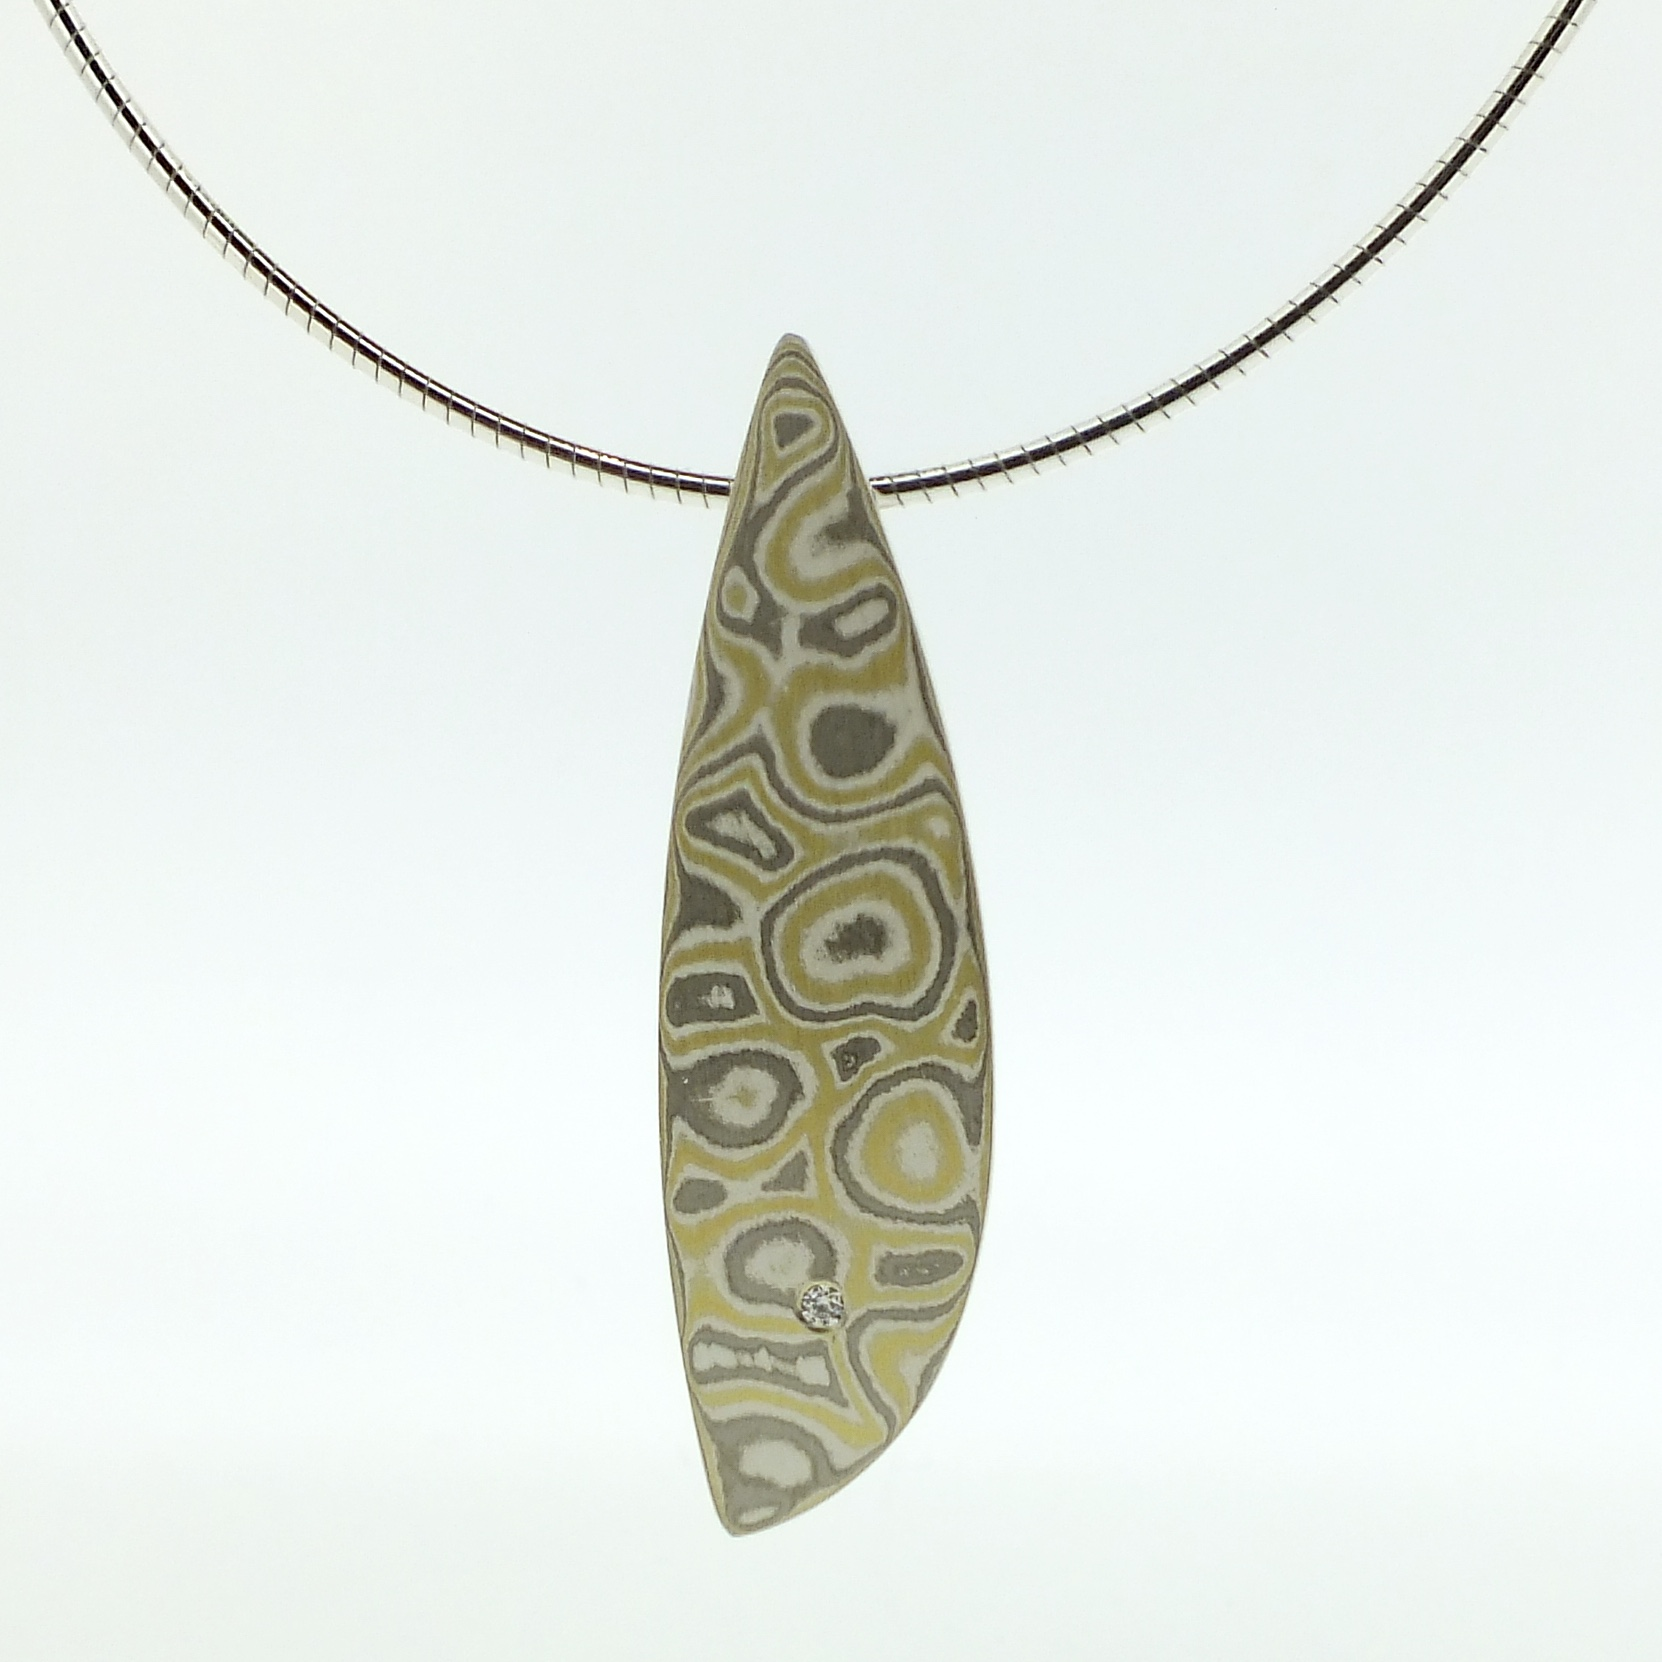 22k gold, 18k white gold and silver mokume gane large Sgiath pendant with diamond detail